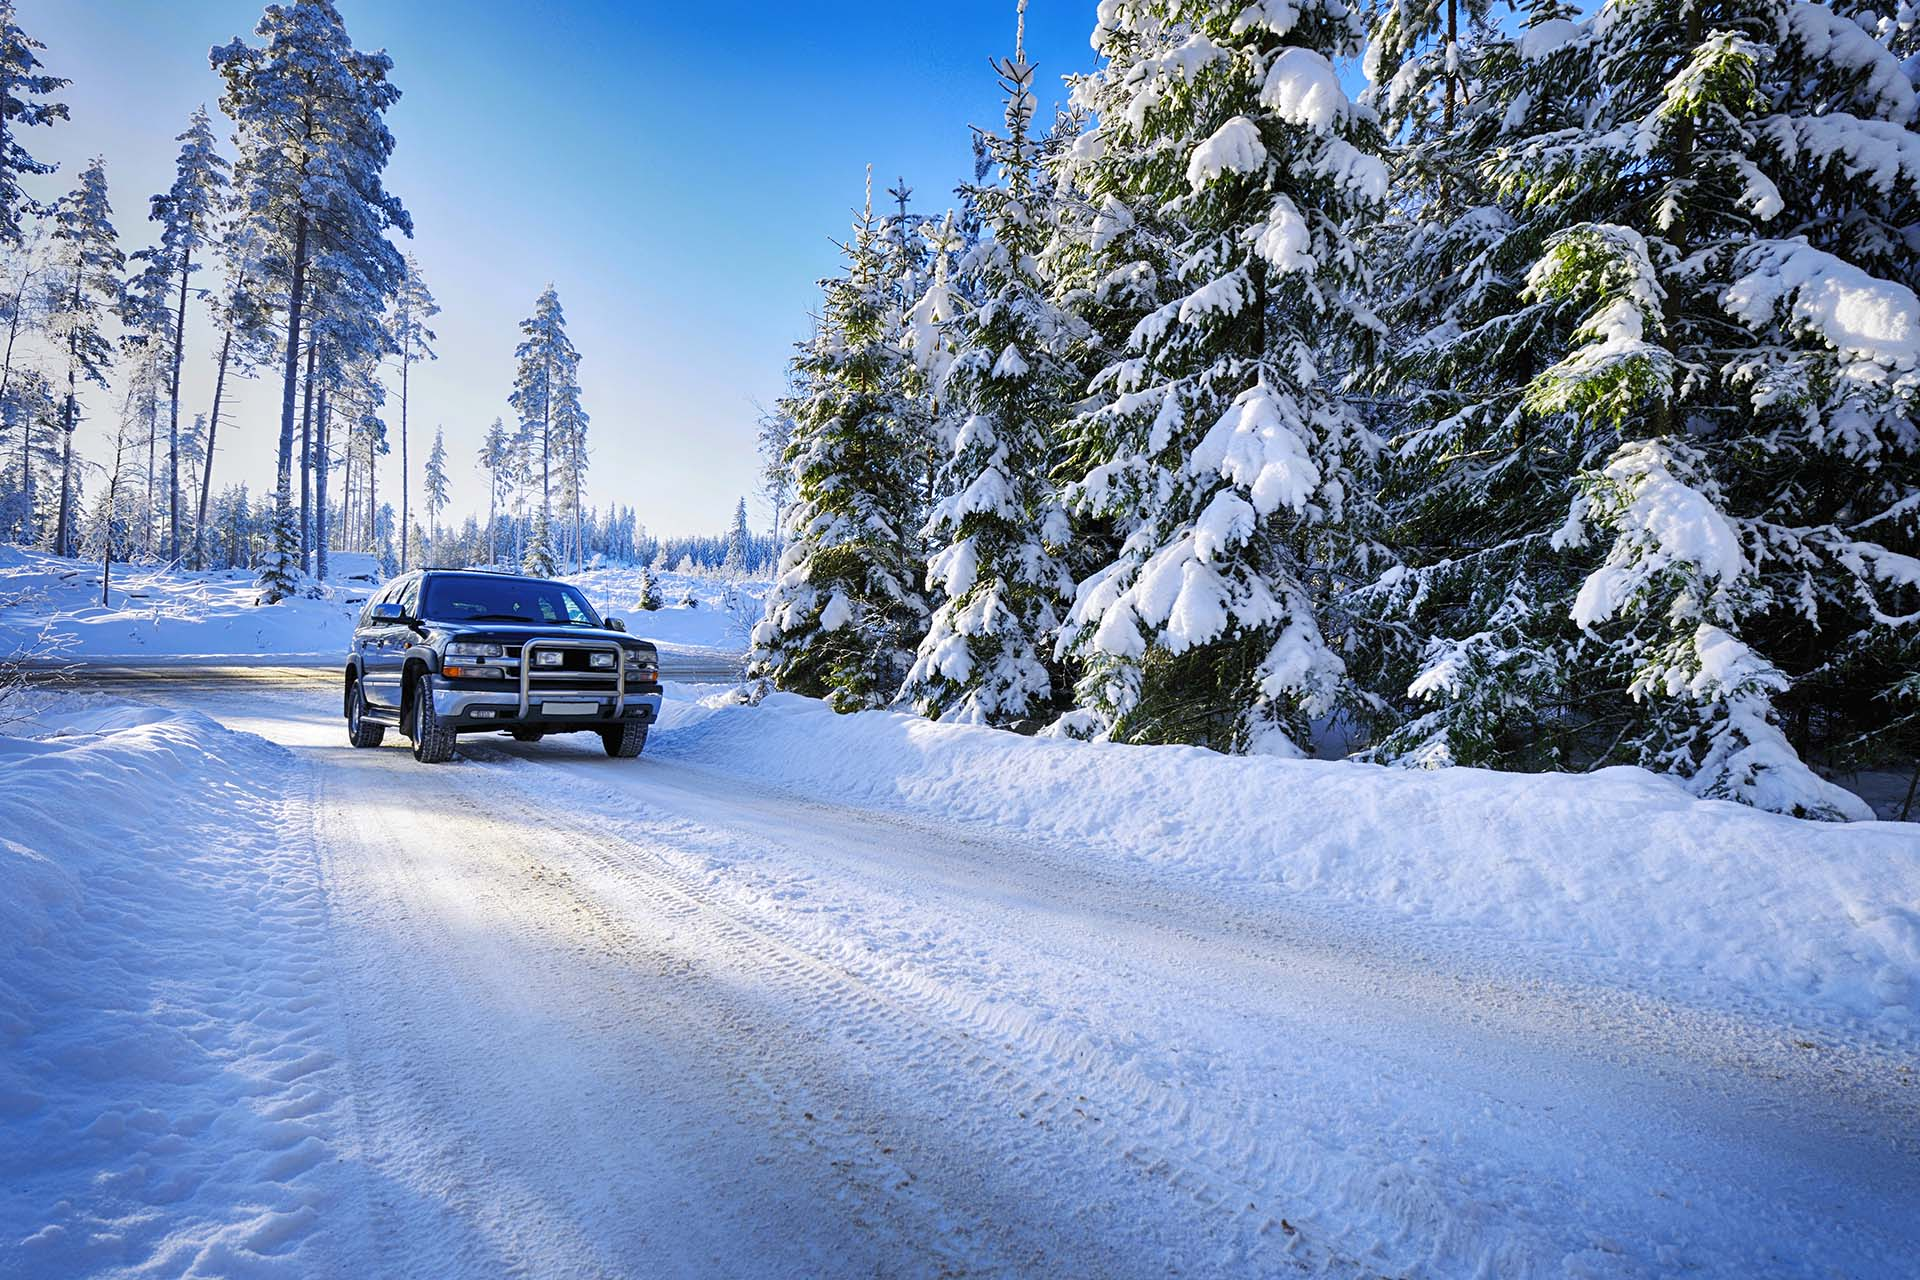 Winterization: Is Your Car Ready for Winter?